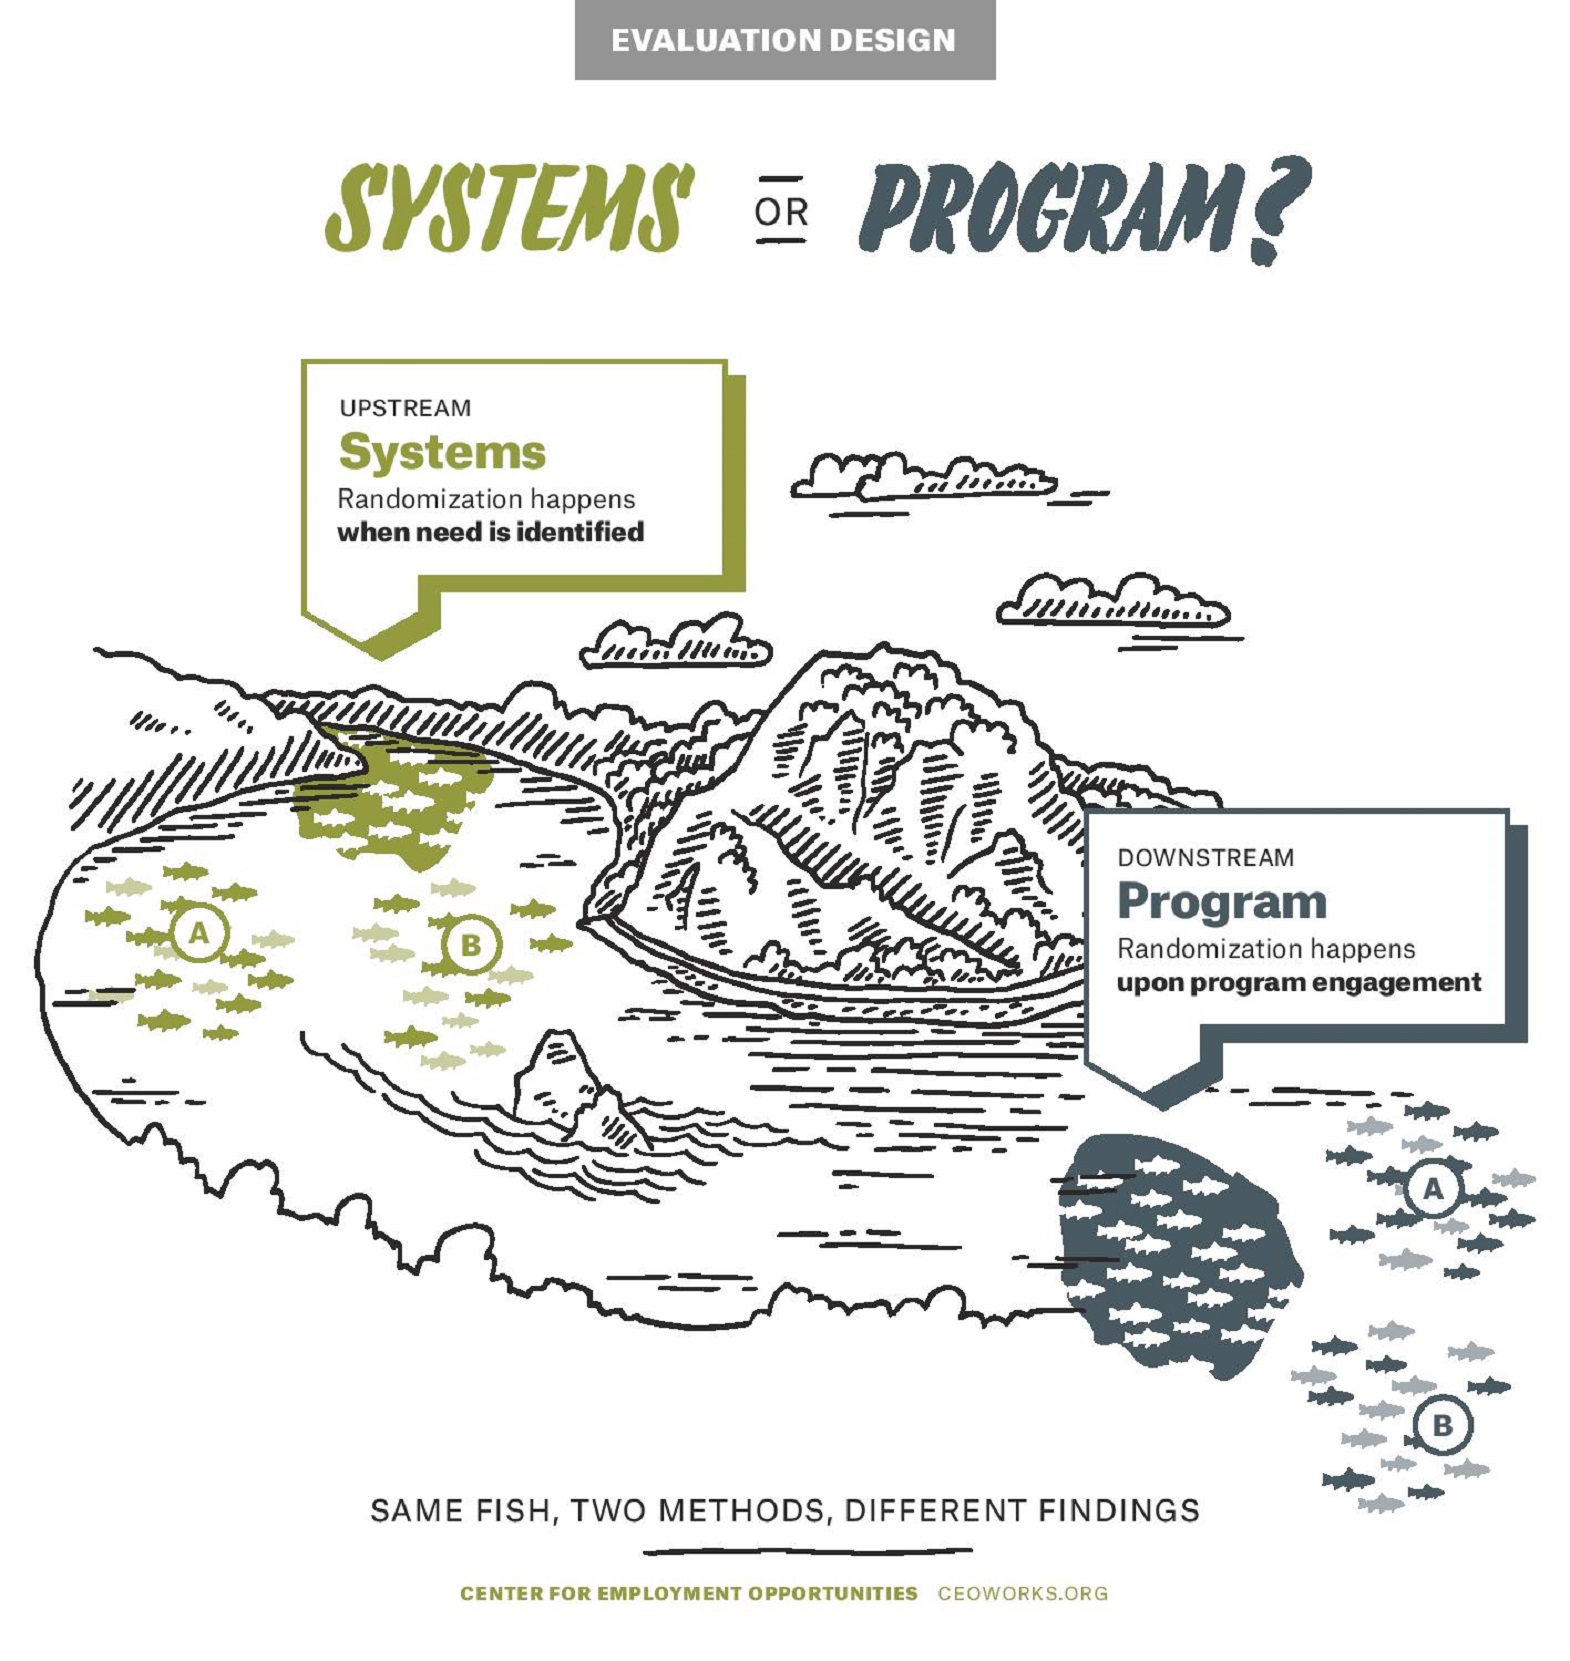 Systems or Programs: Upstream = System, Downstream = Programs